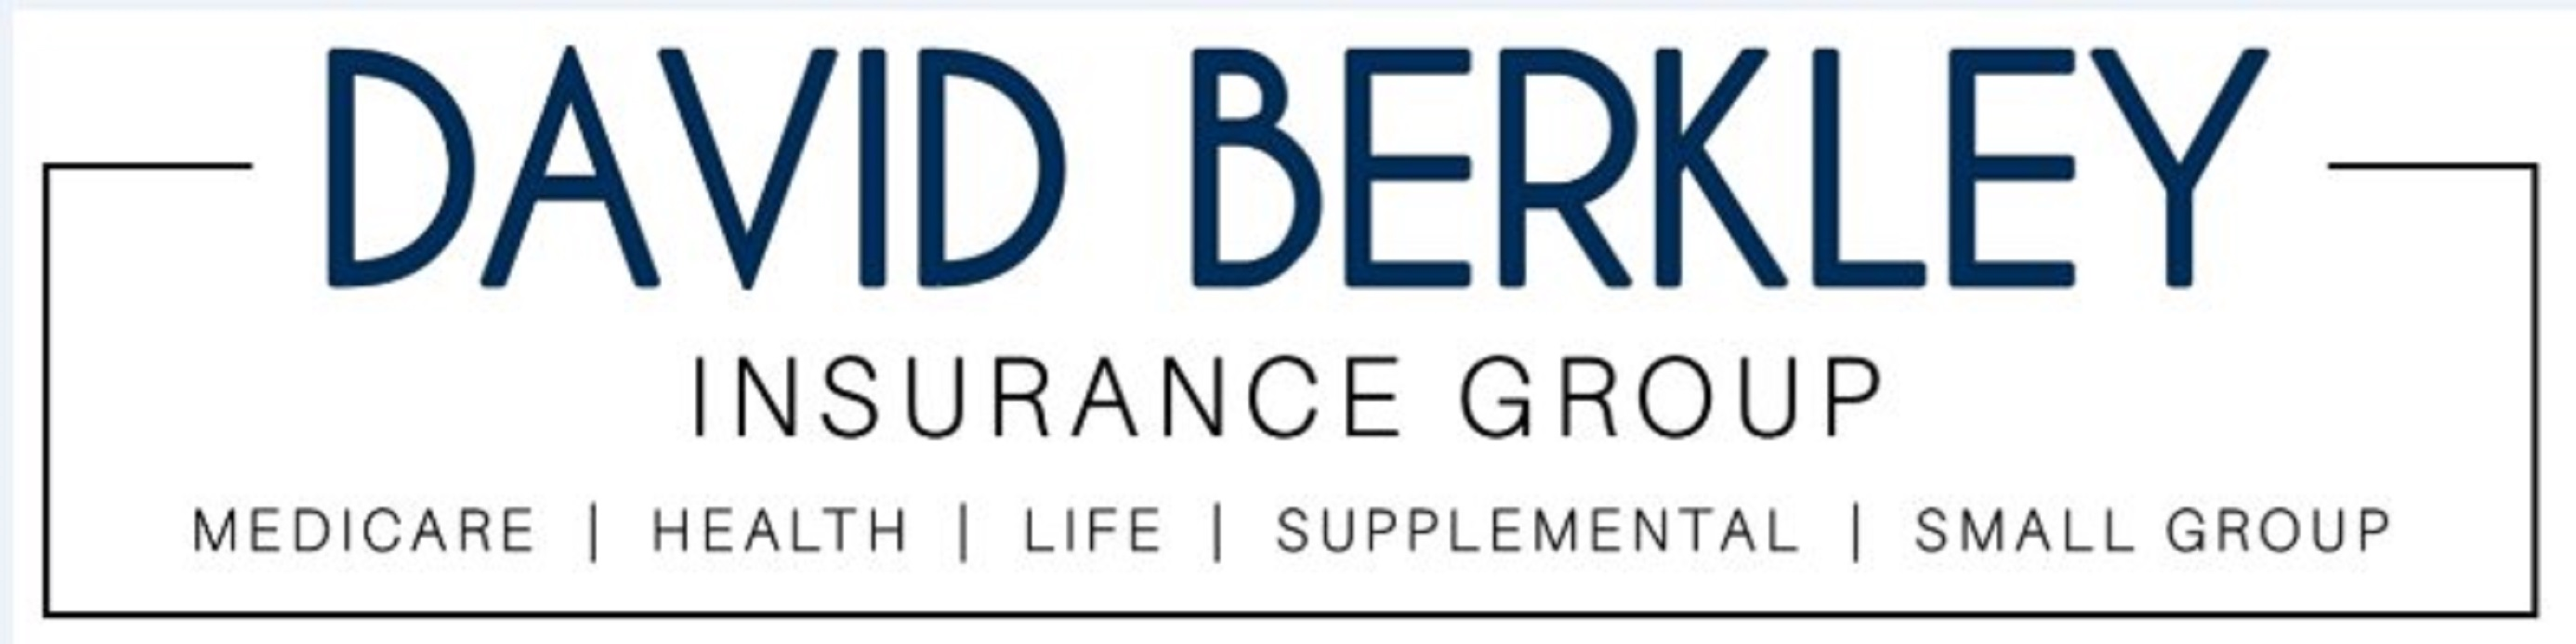 David Berkley Insurance Group